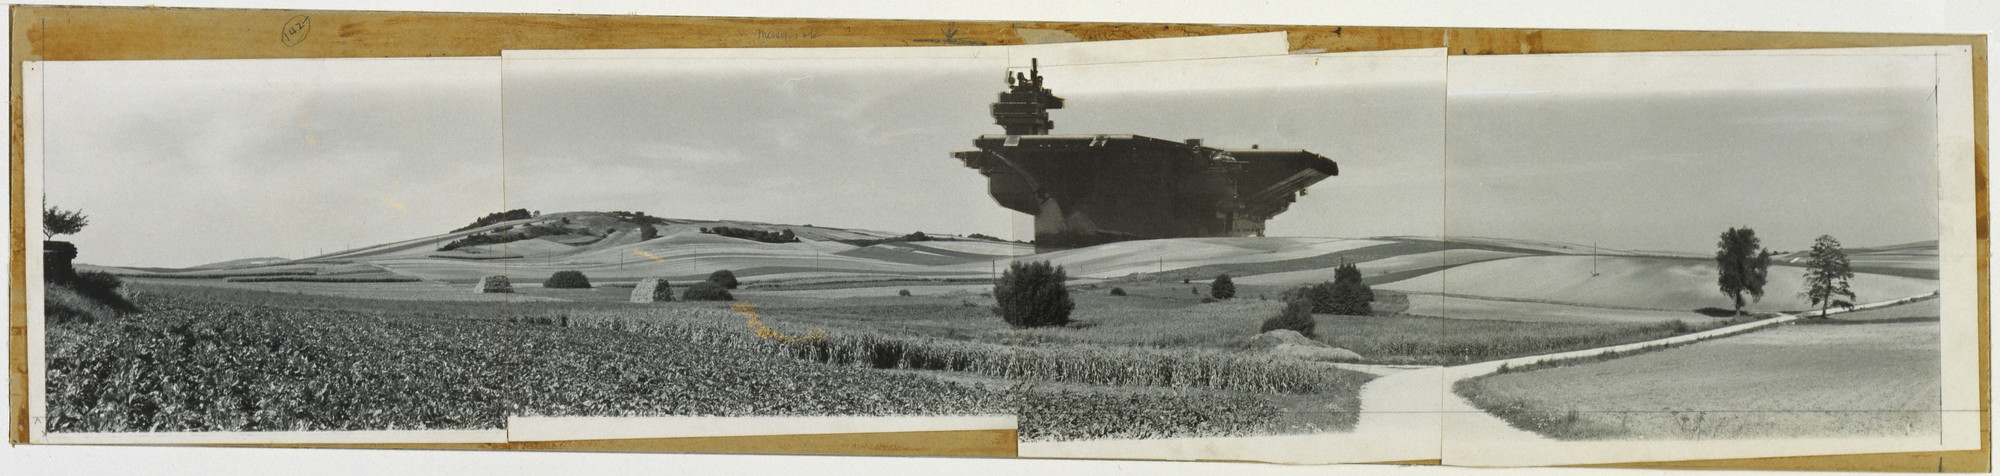 Hans Hollein. Aircraft Carrier City in Landscape, project, Exterior perspective. 1964